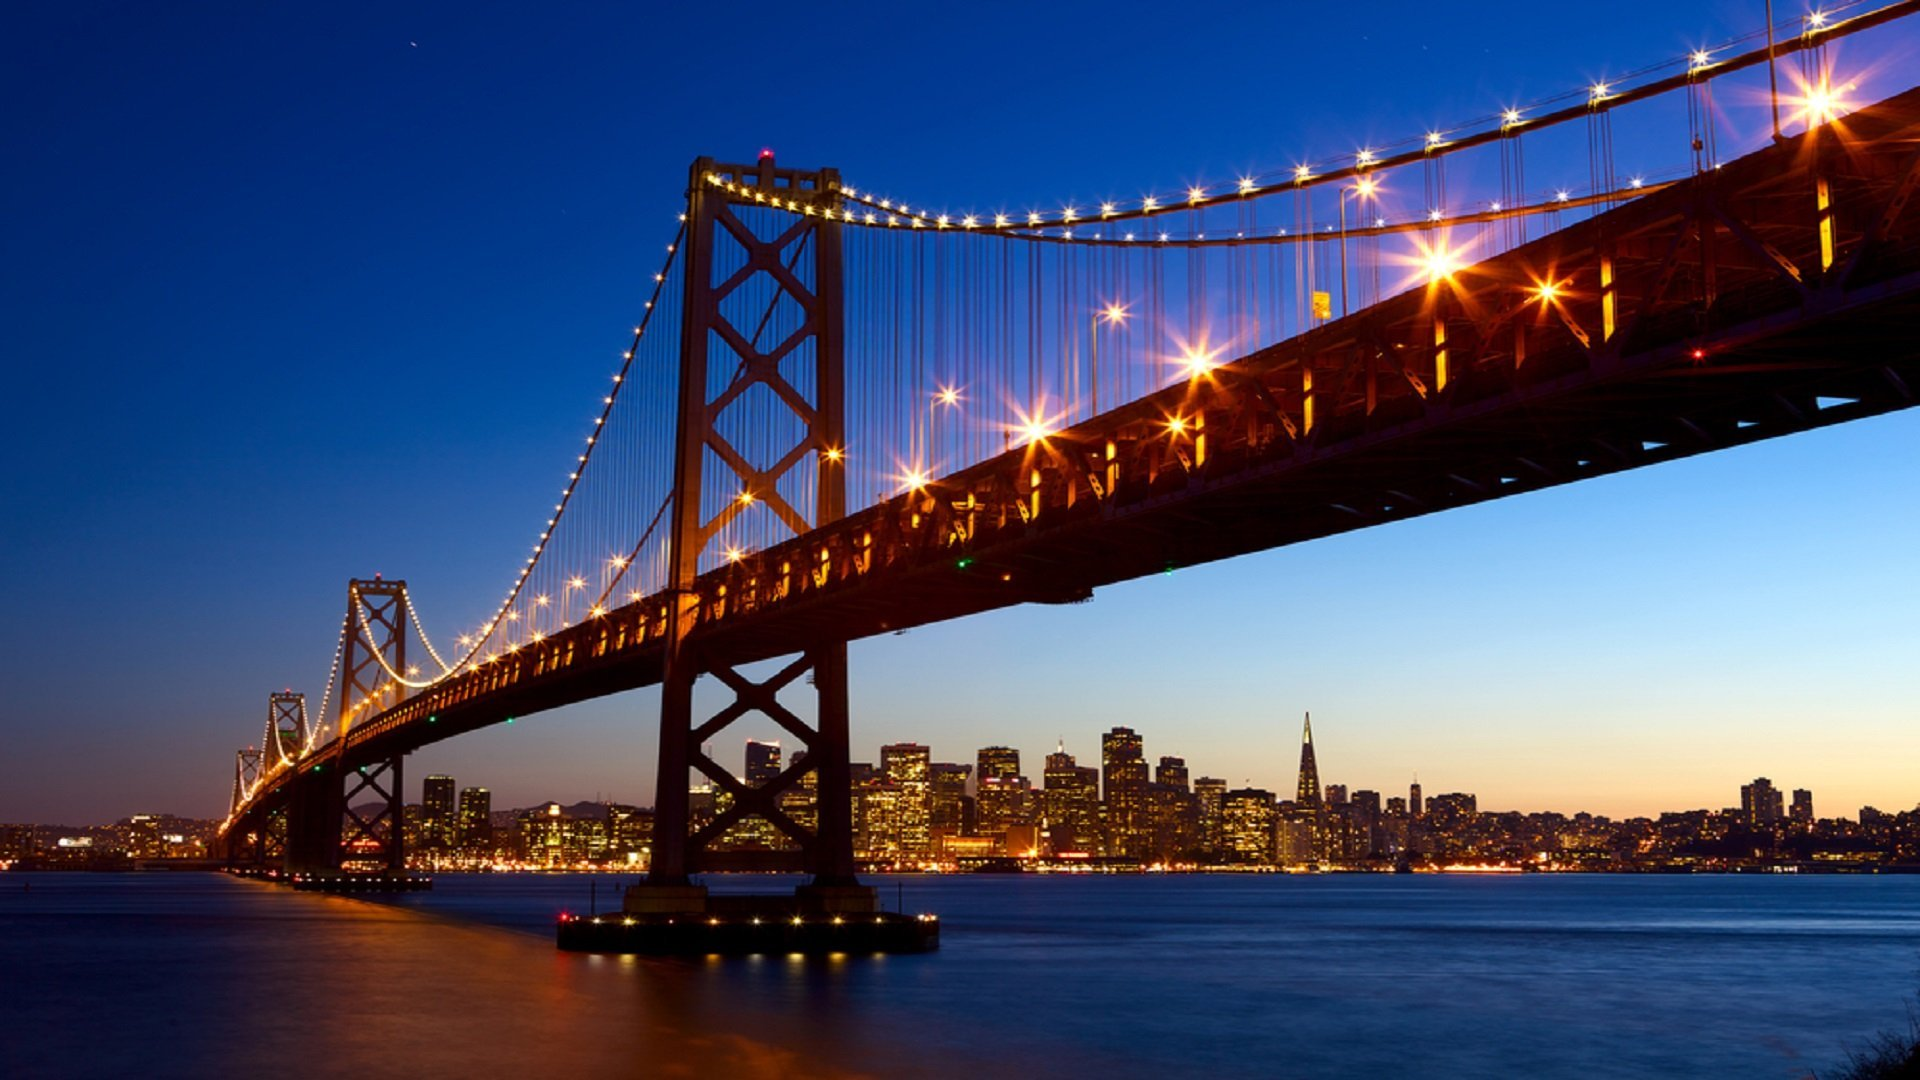 Vacation Travel Guide To San Francisco Best Places To Visit In San Francisco Zen Tripstar travel trip usa north america tour